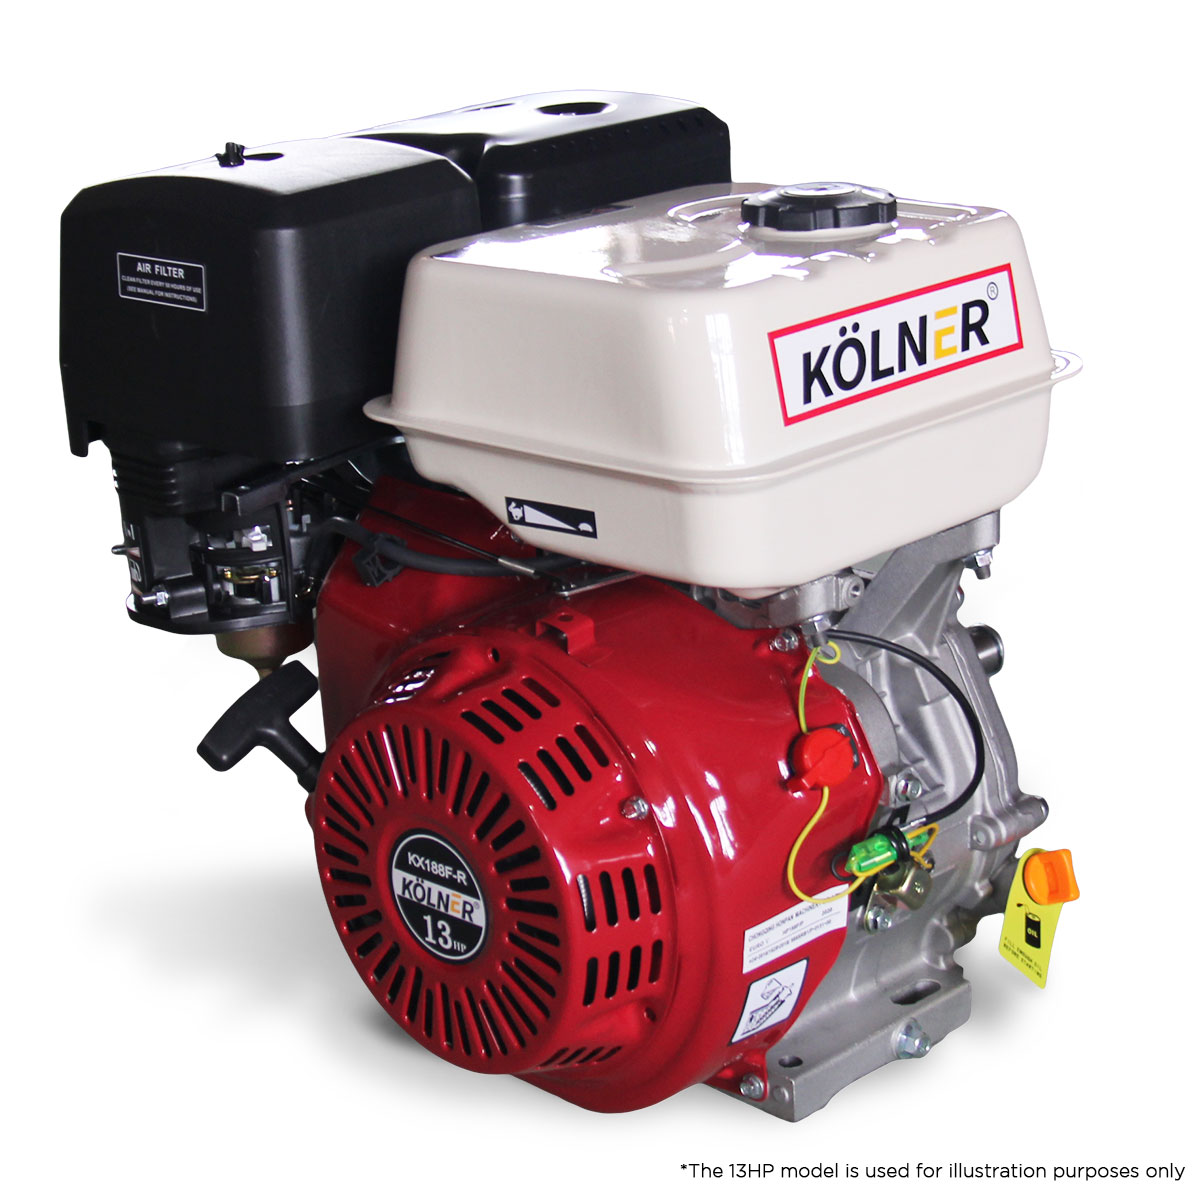 Kolner 16hp 25.4mm Horizontal Key Shaft Q Type Petrol Engine - Recoil Start - $525.05